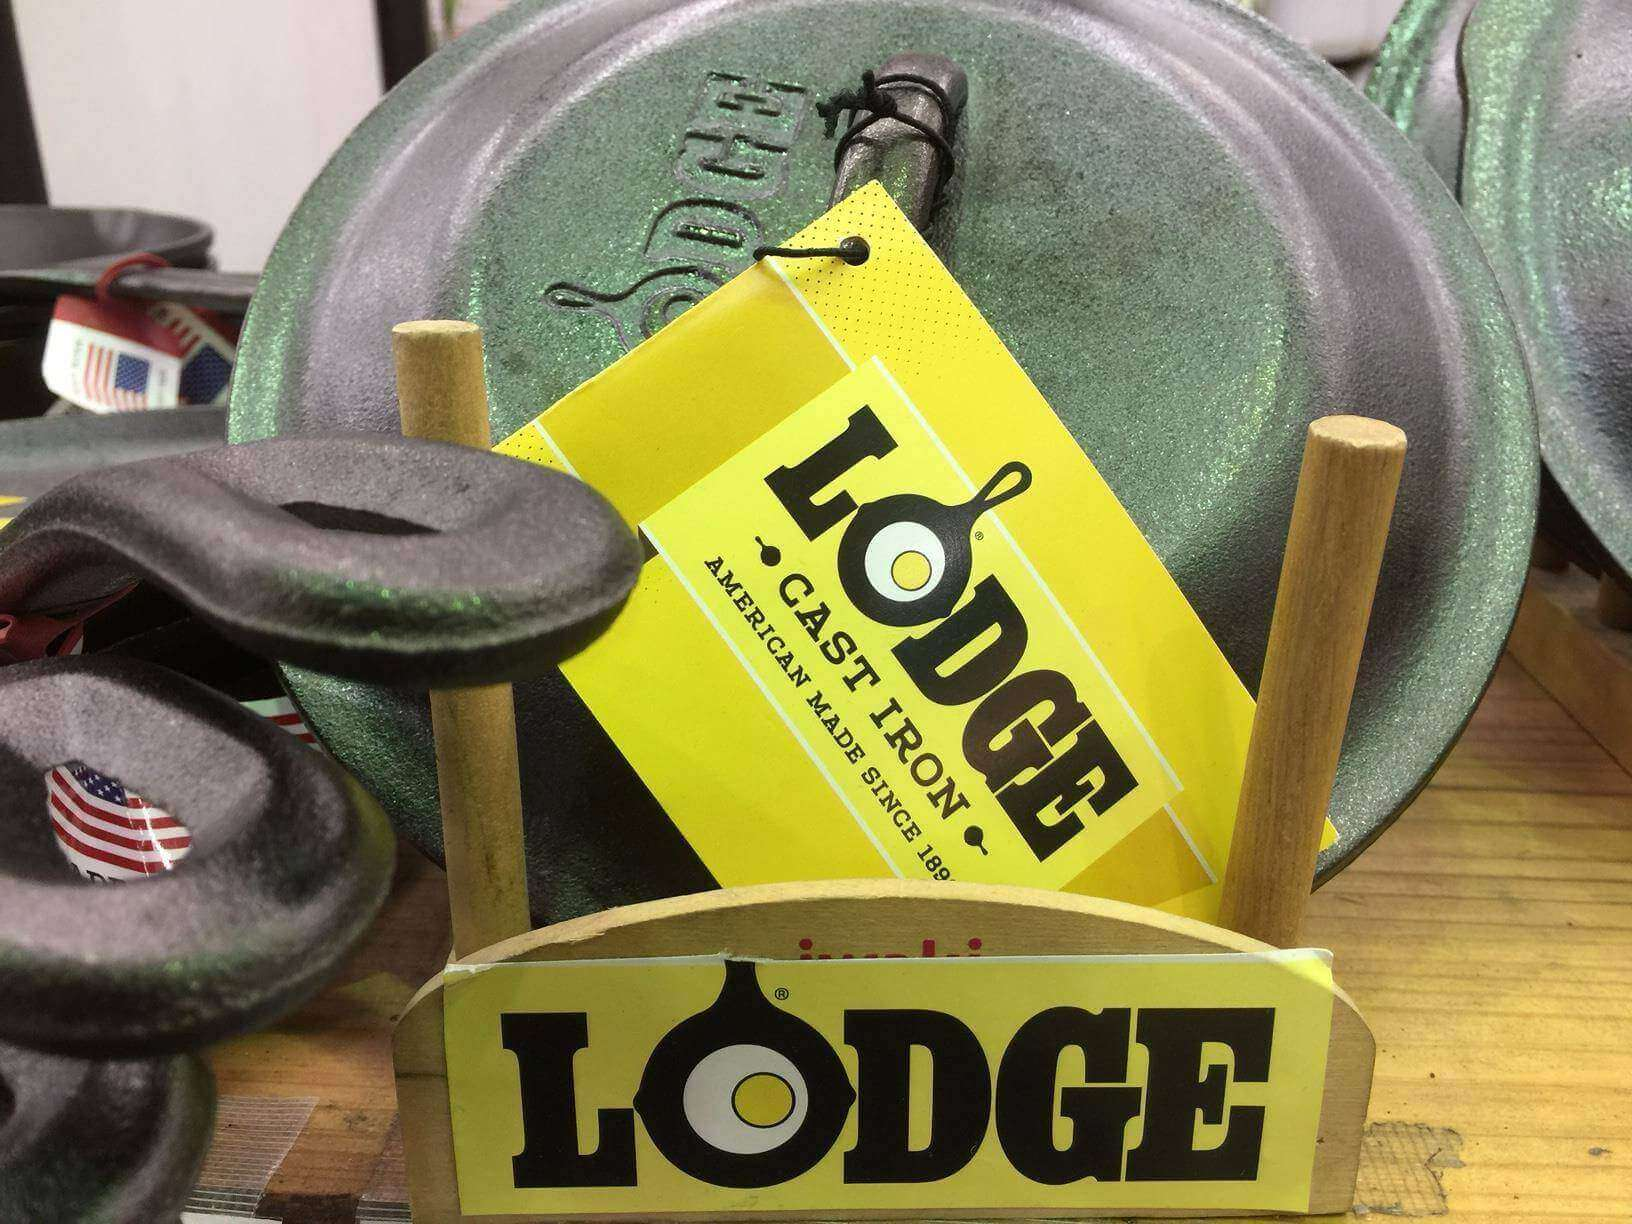 Skillet cover rack with skillet lids. Lodge label in front and yellow label on skillet cover.